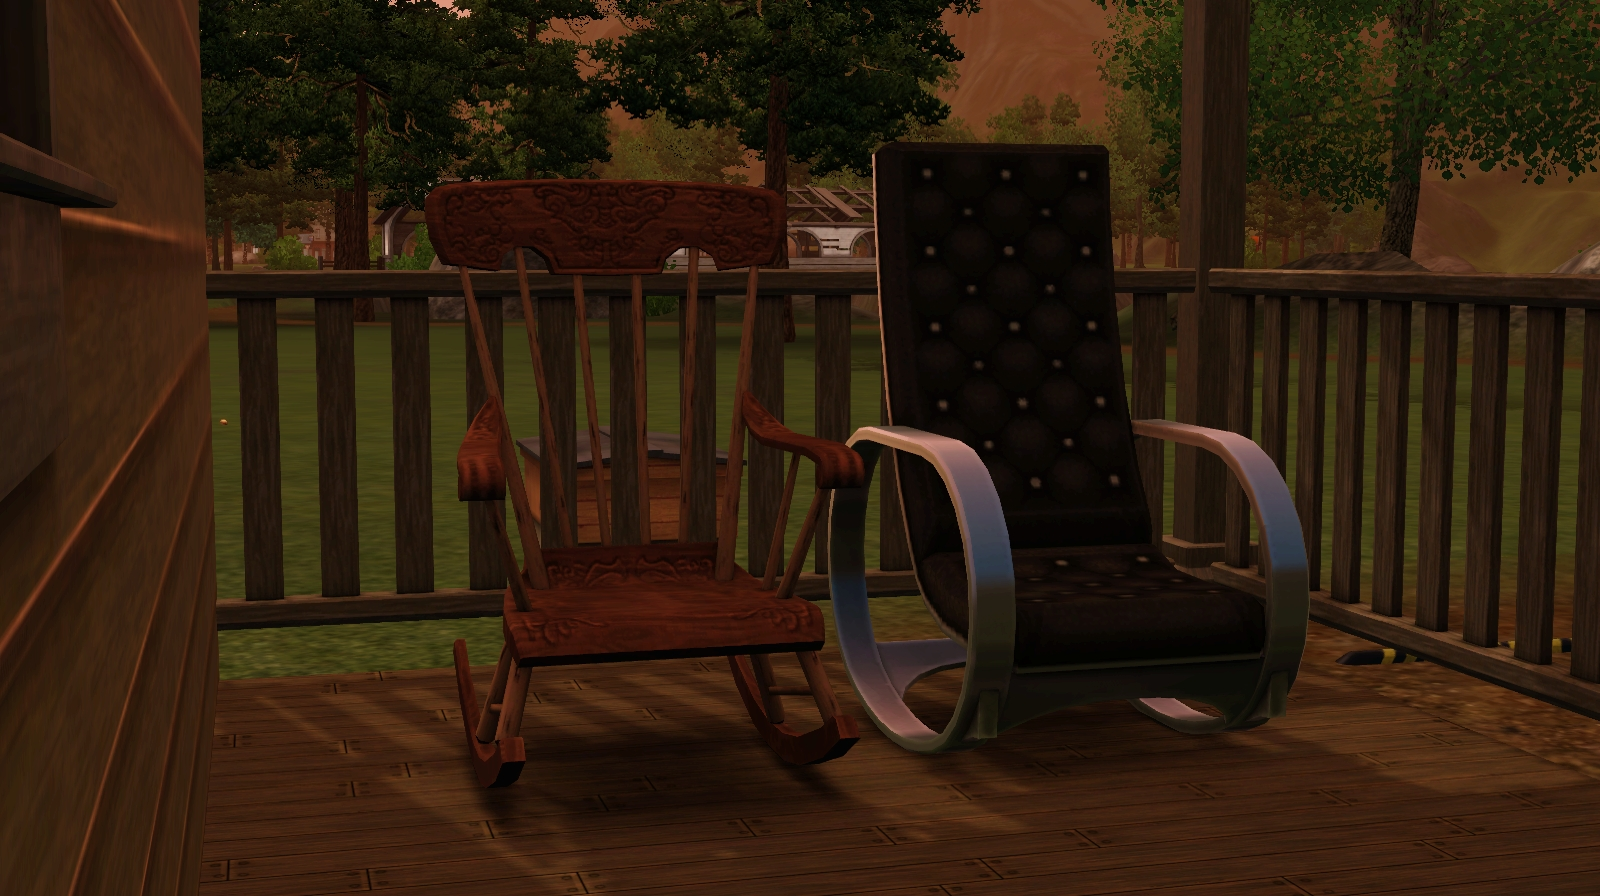 Miraculous Rocking Chair The Sims Wiki Fandom Powered By Wikia Pabps2019 Chair Design Images Pabps2019Com